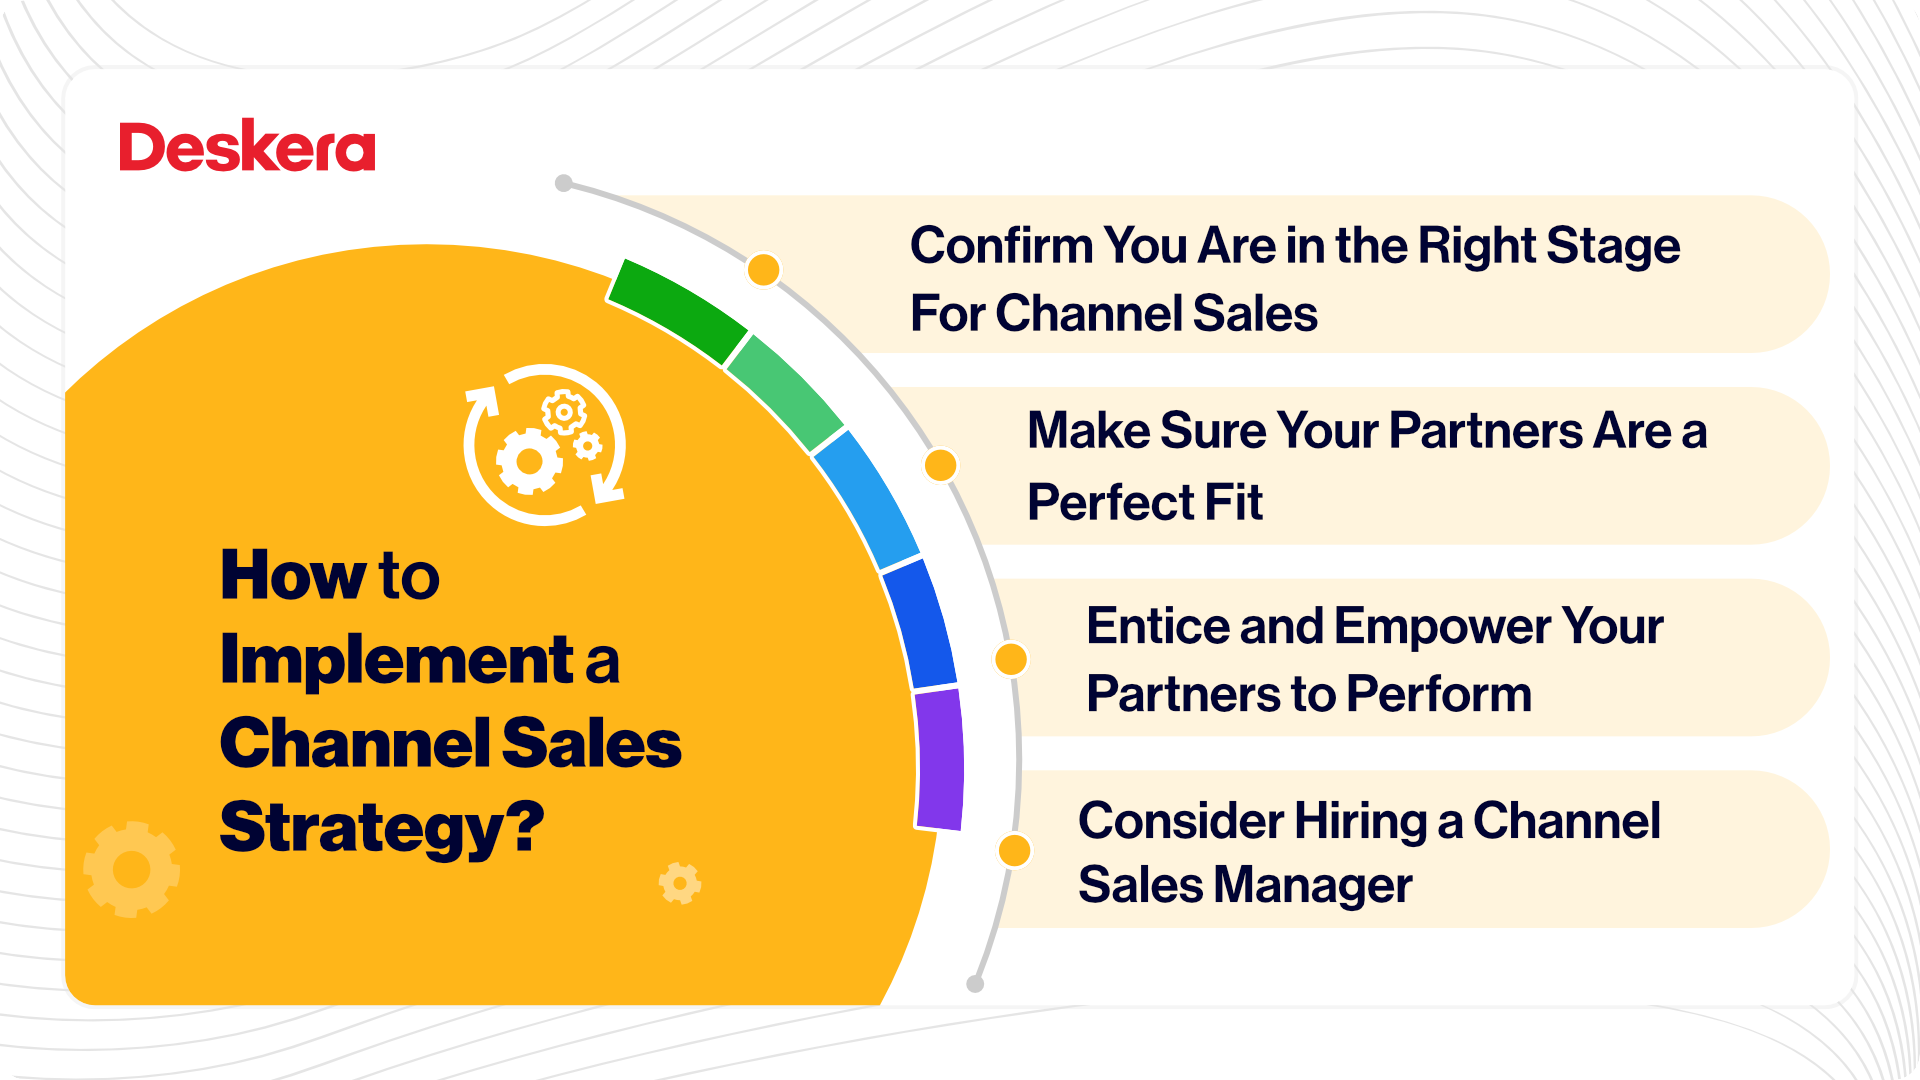 How to Implement a Channel Sales Strategy?